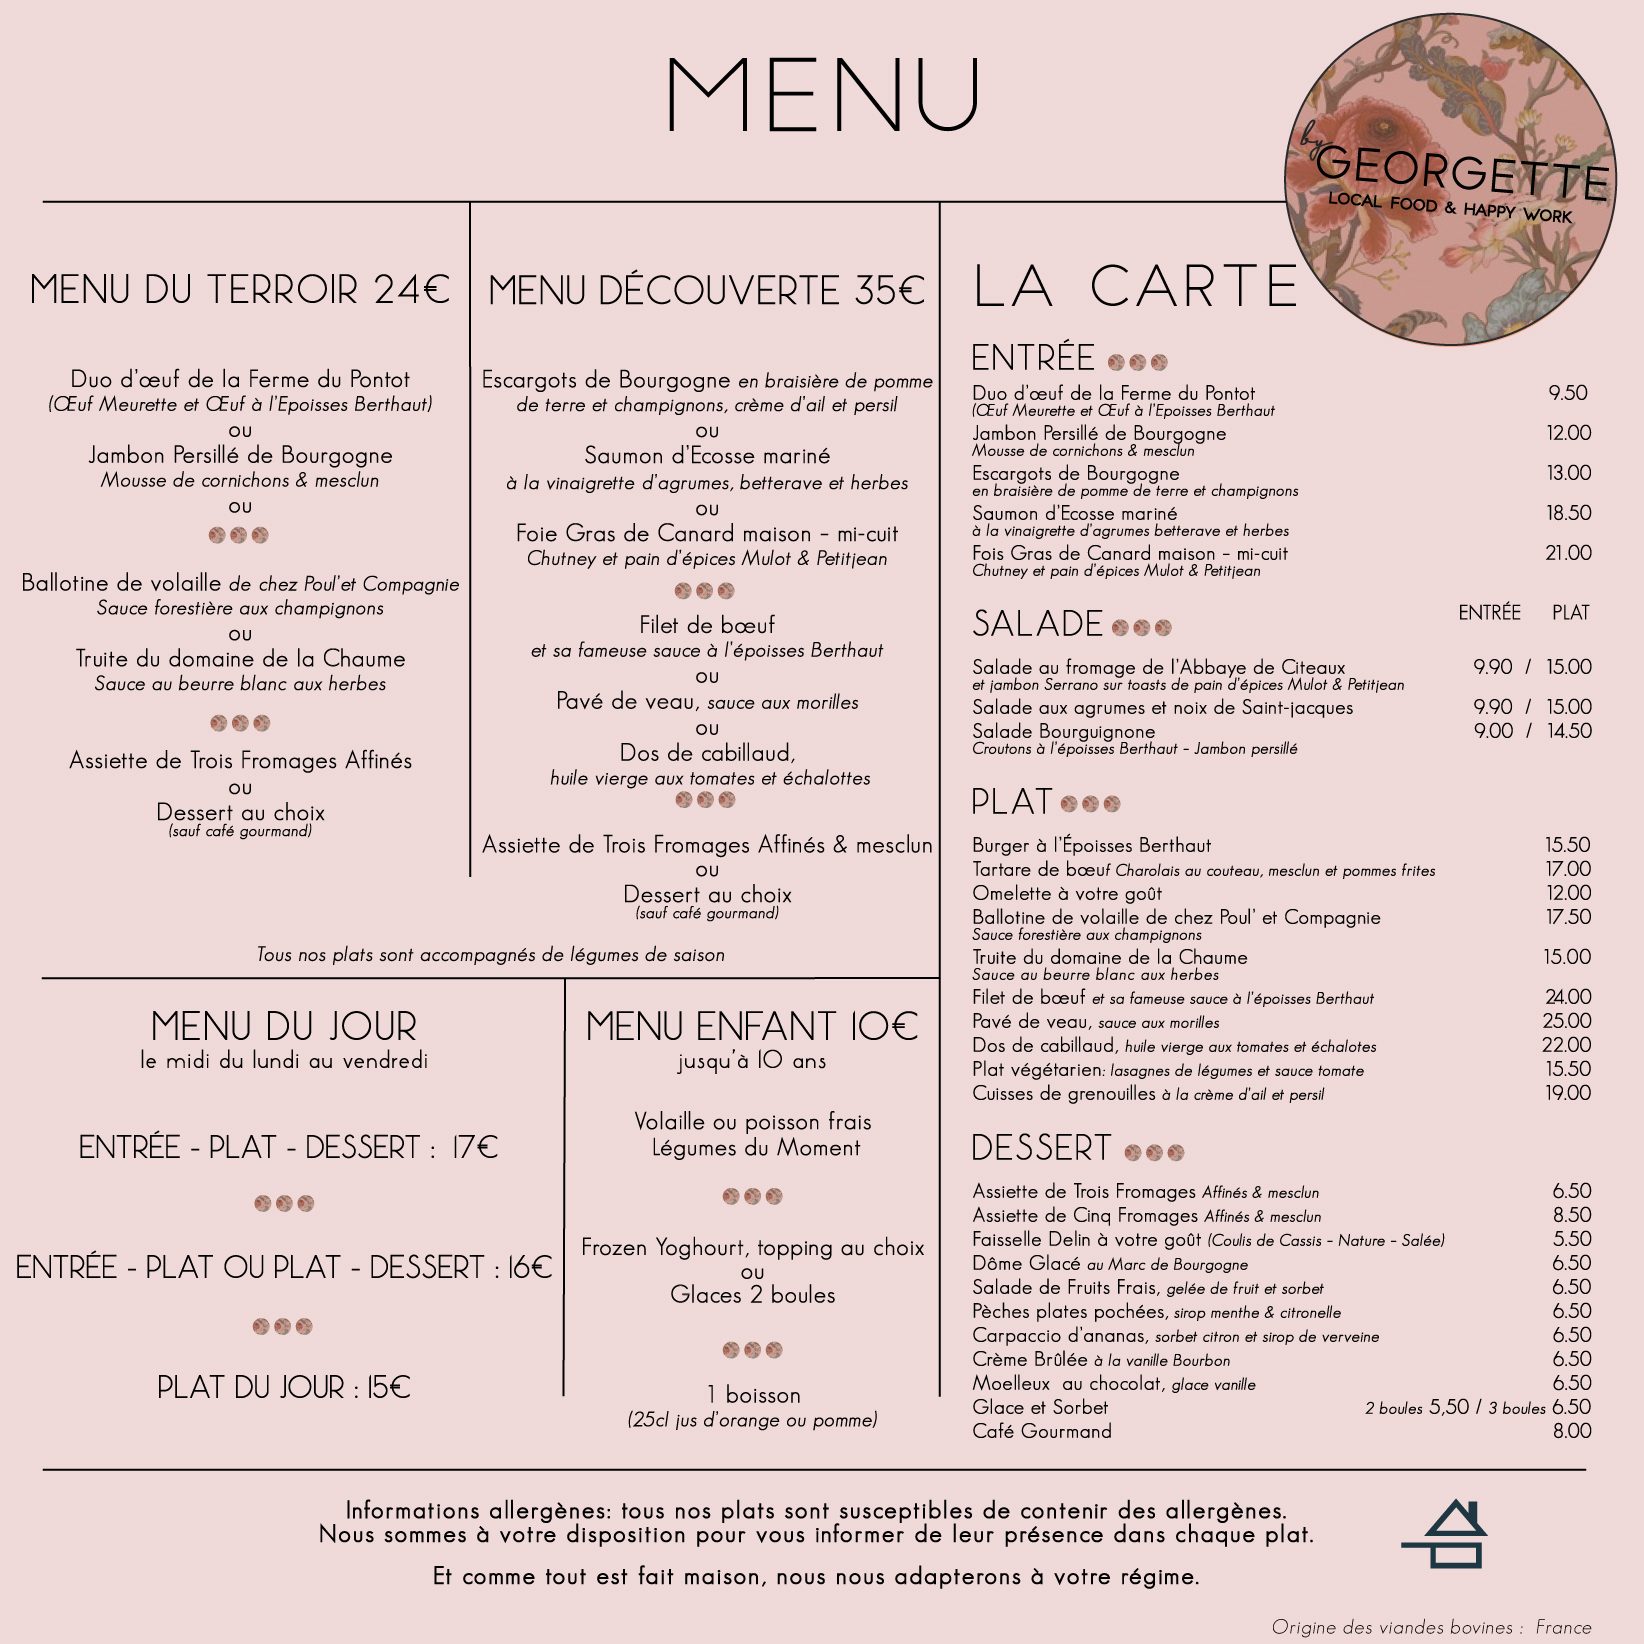 MENU-6 - by georgette